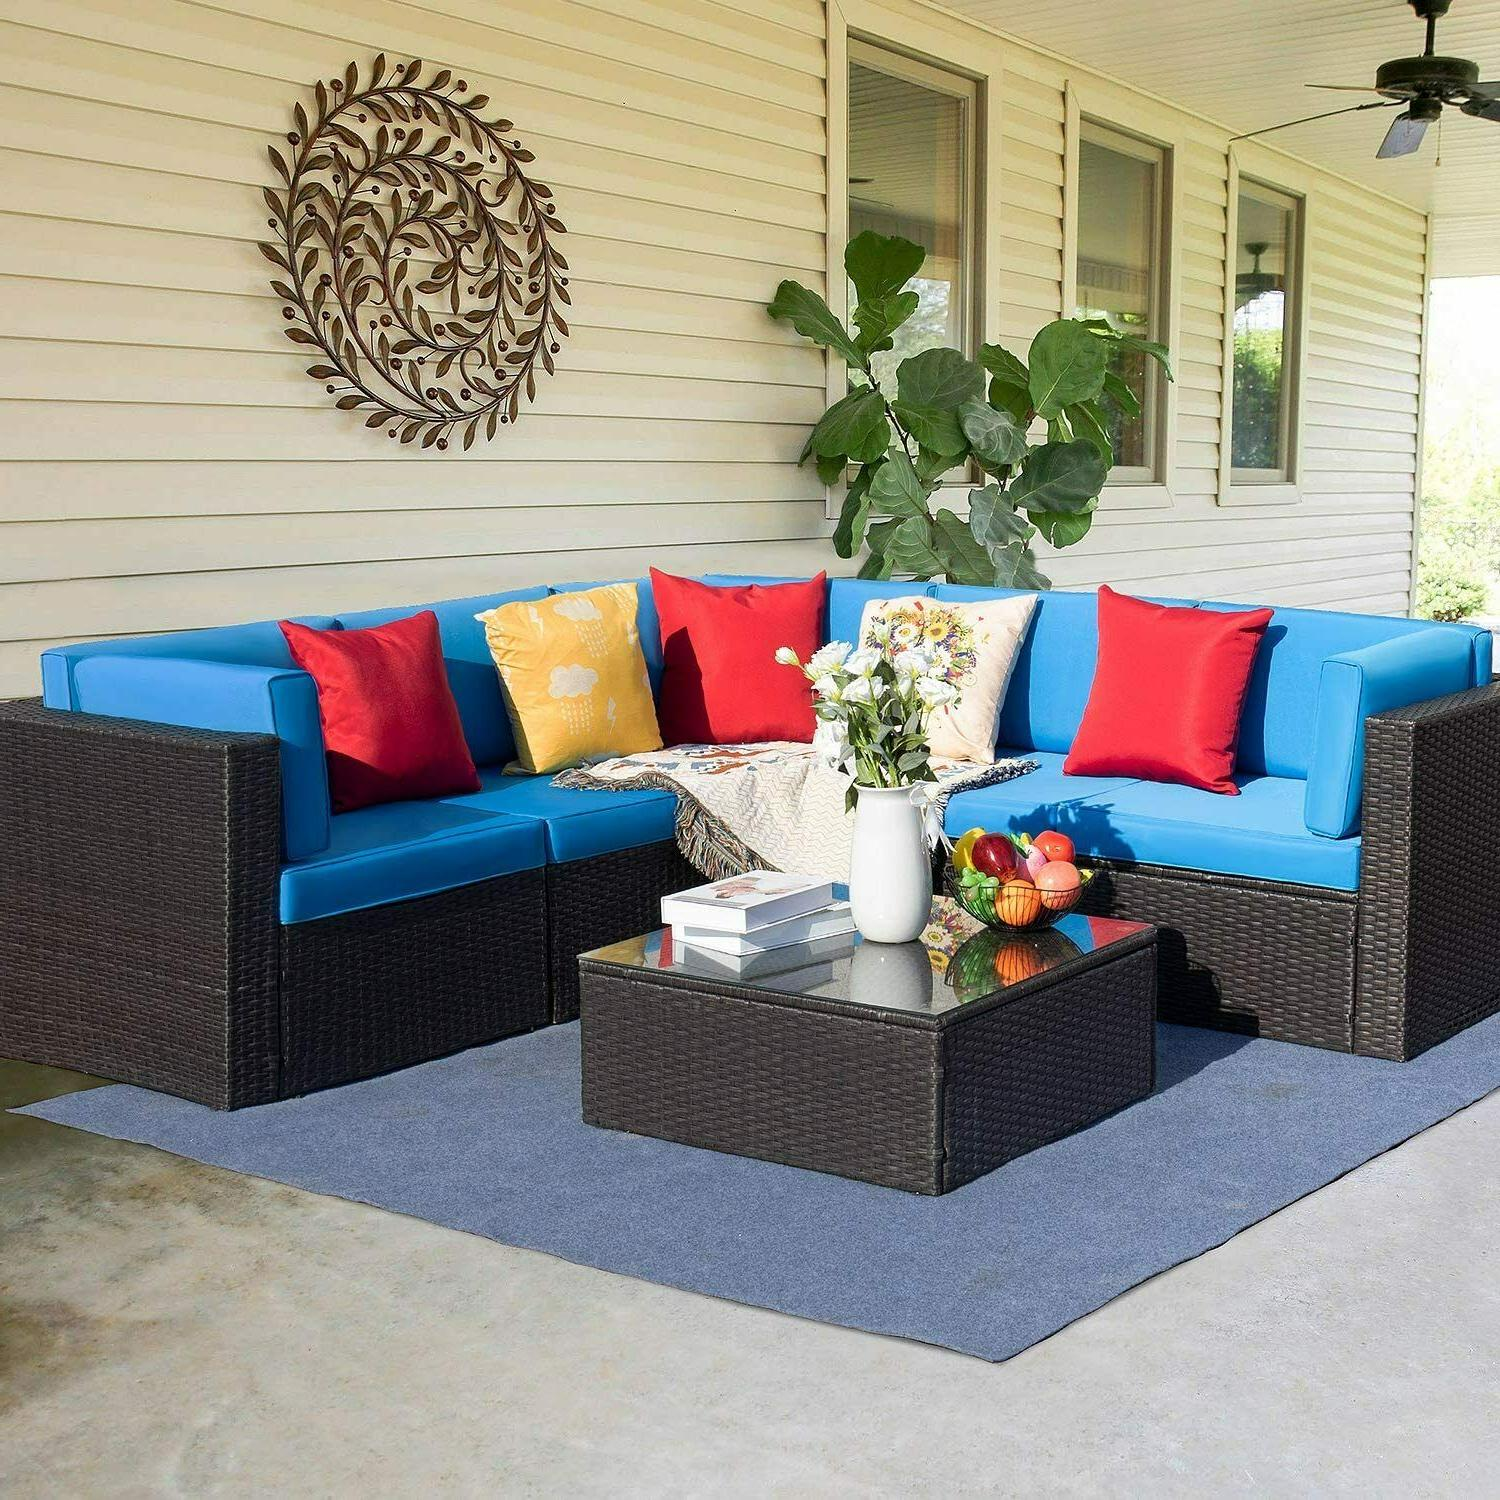 6 pieces patio furniture sectional set outdoor